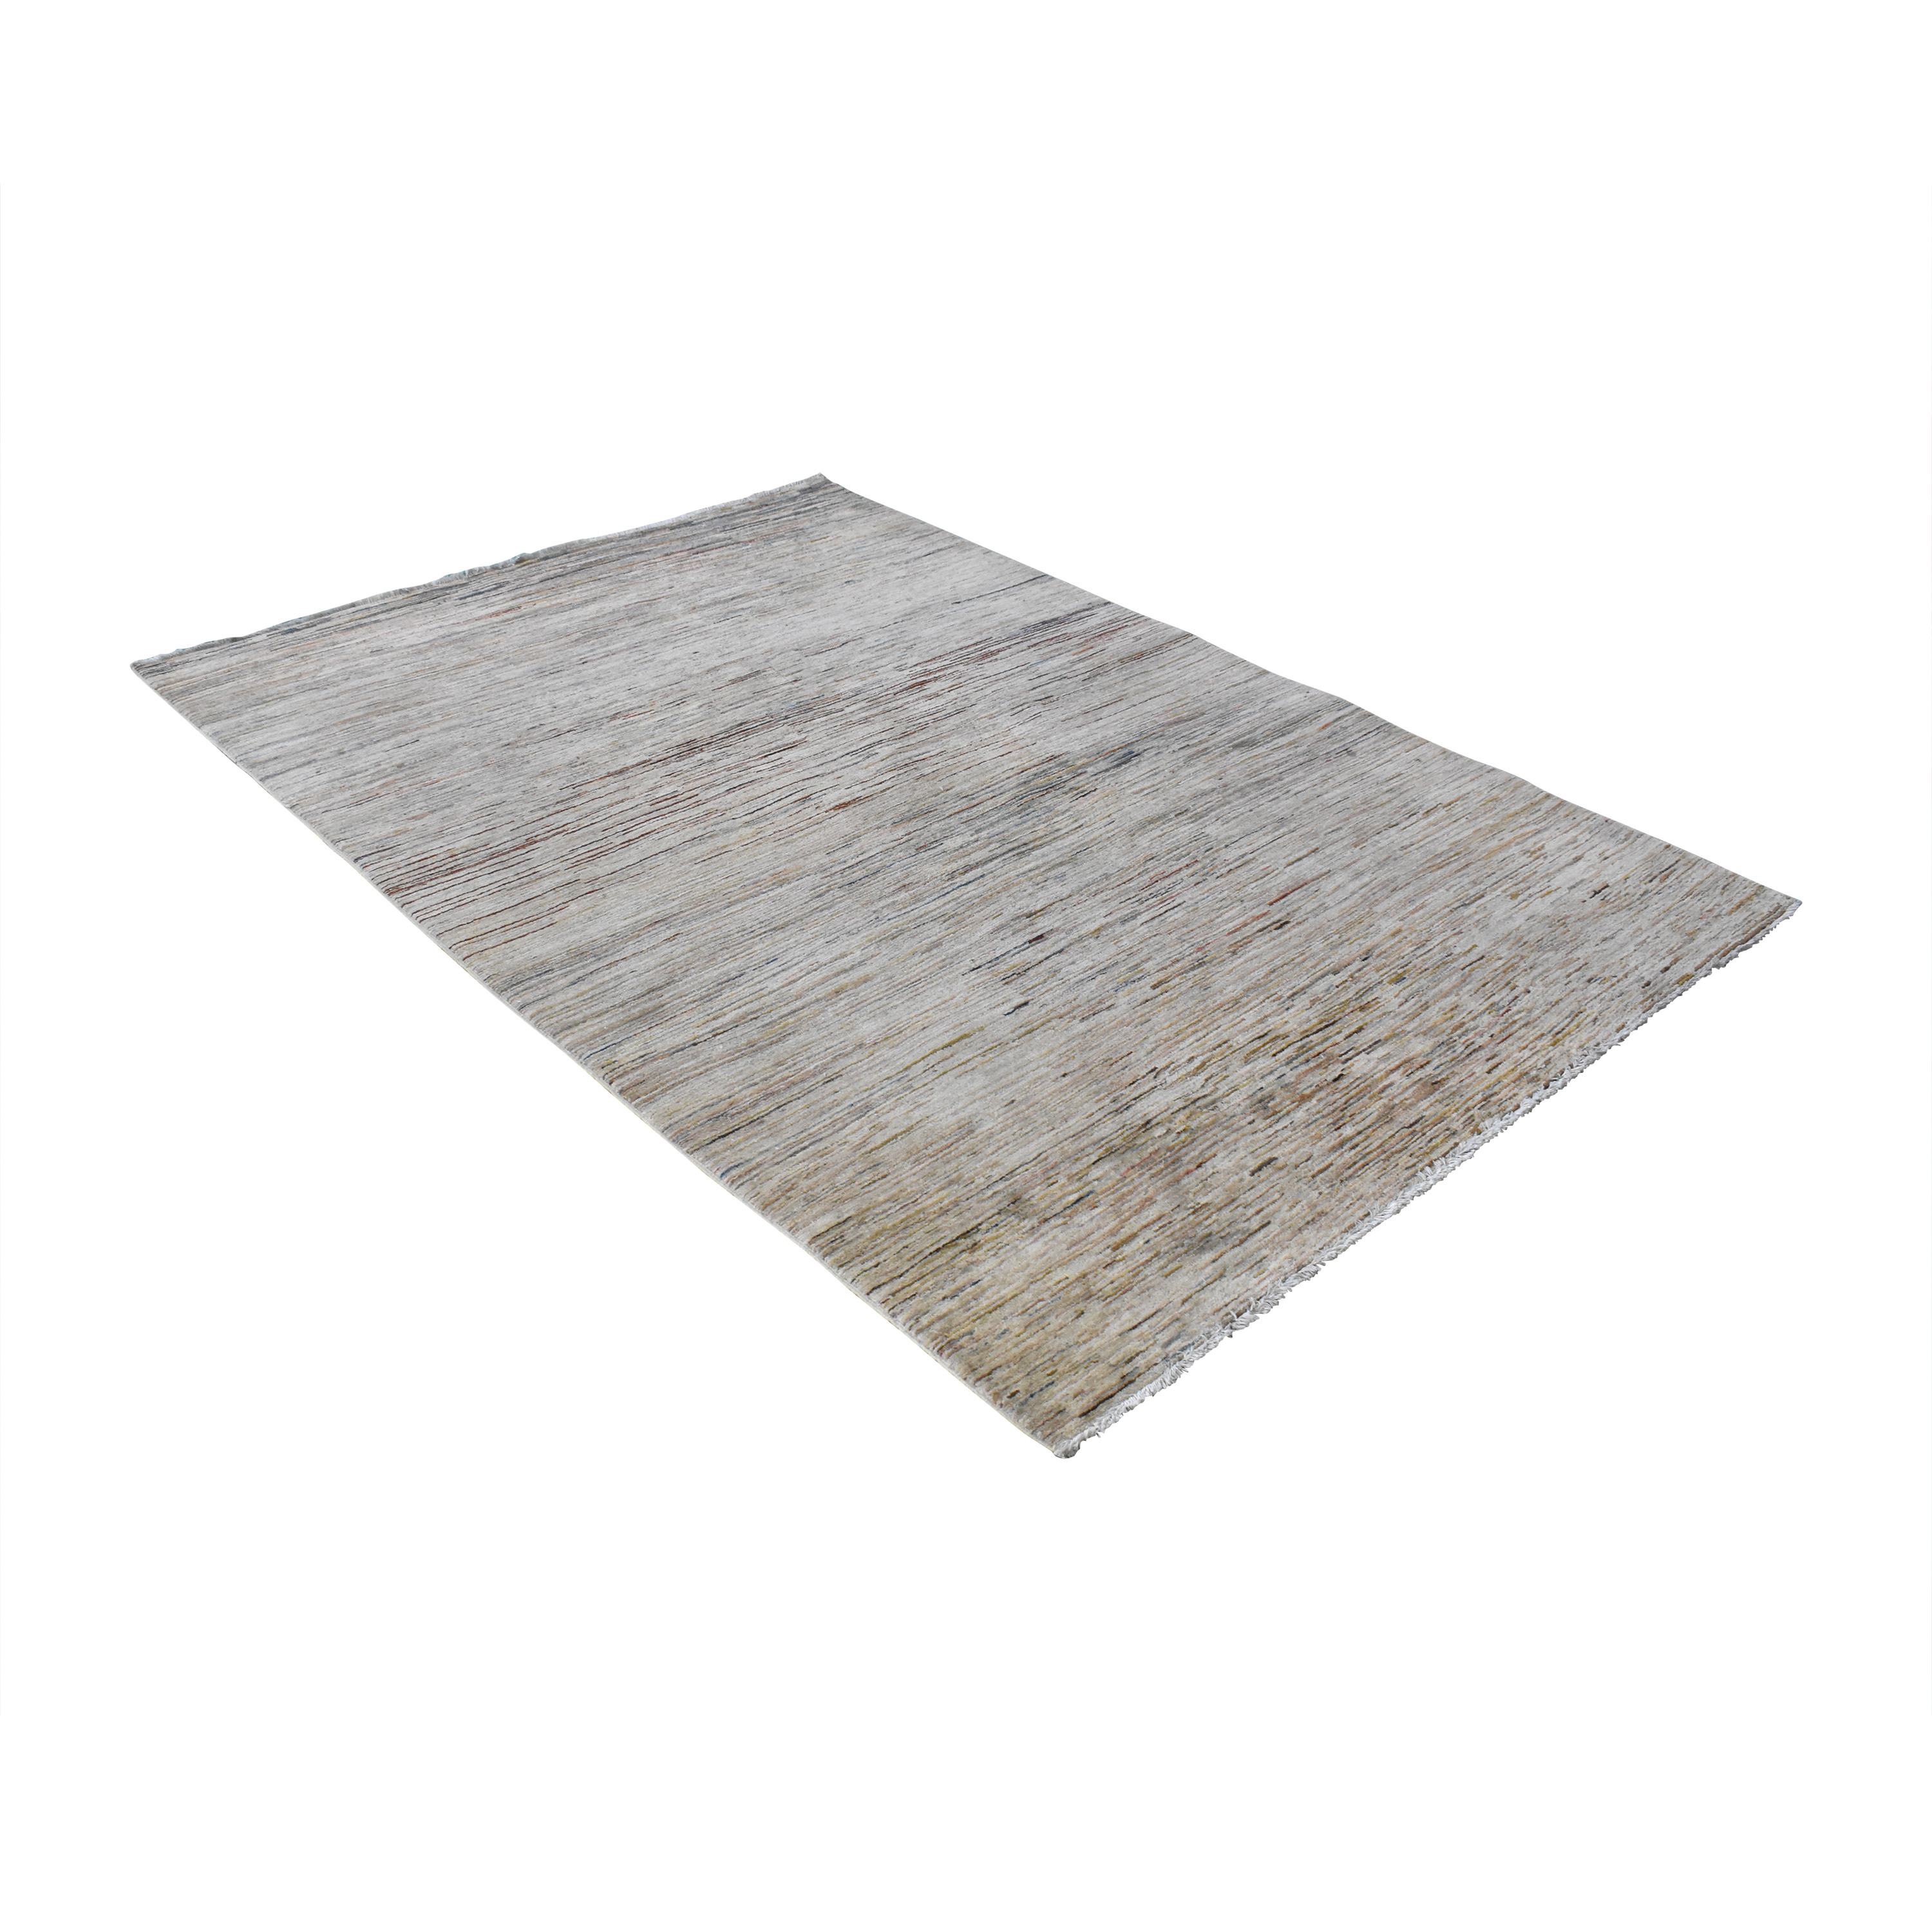 Khyber Striped Style Area Rug Multi